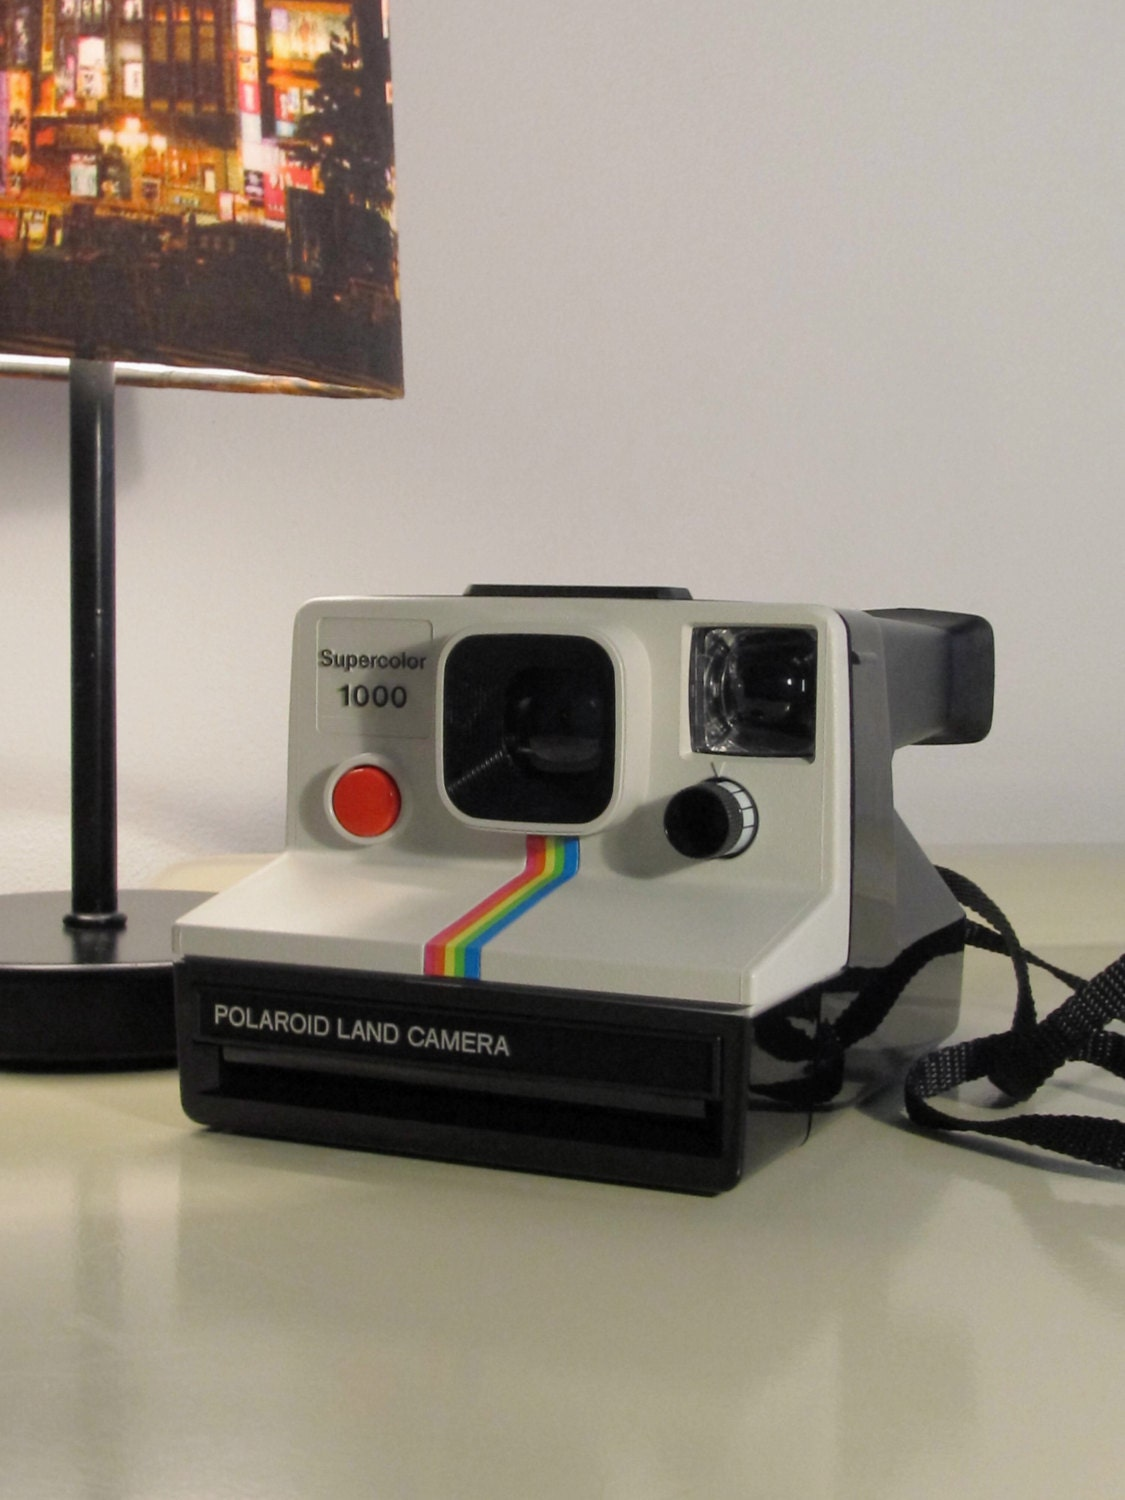 polaroid camera 1000 supercolor rainbow land camera sx 70. Black Bedroom Furniture Sets. Home Design Ideas